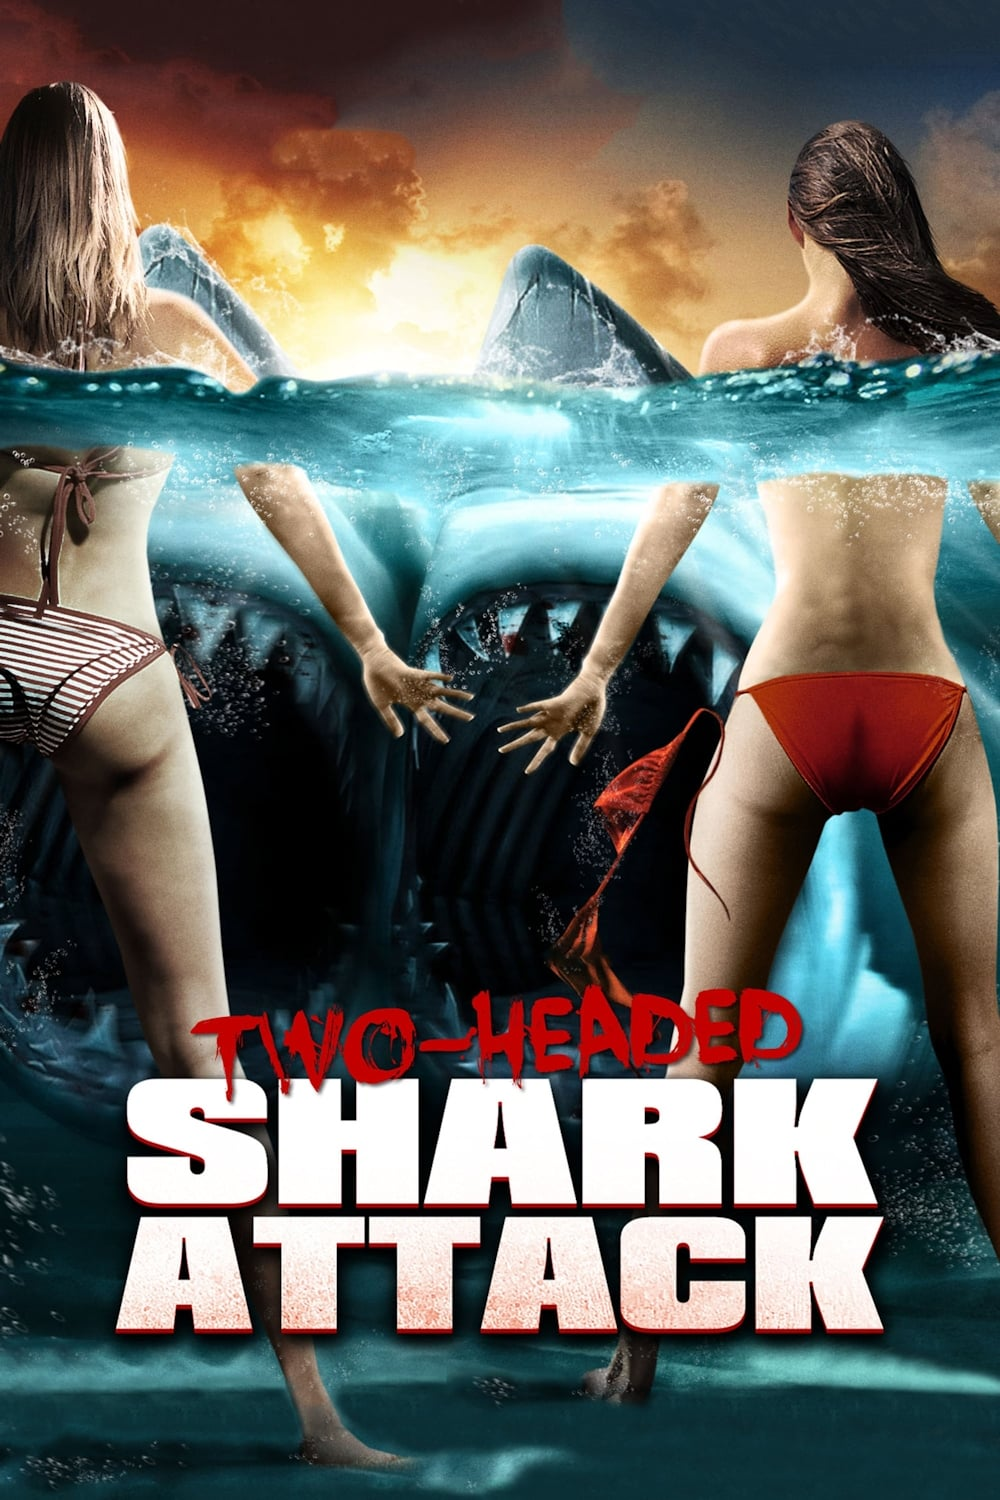 2-Headed Shark Attack